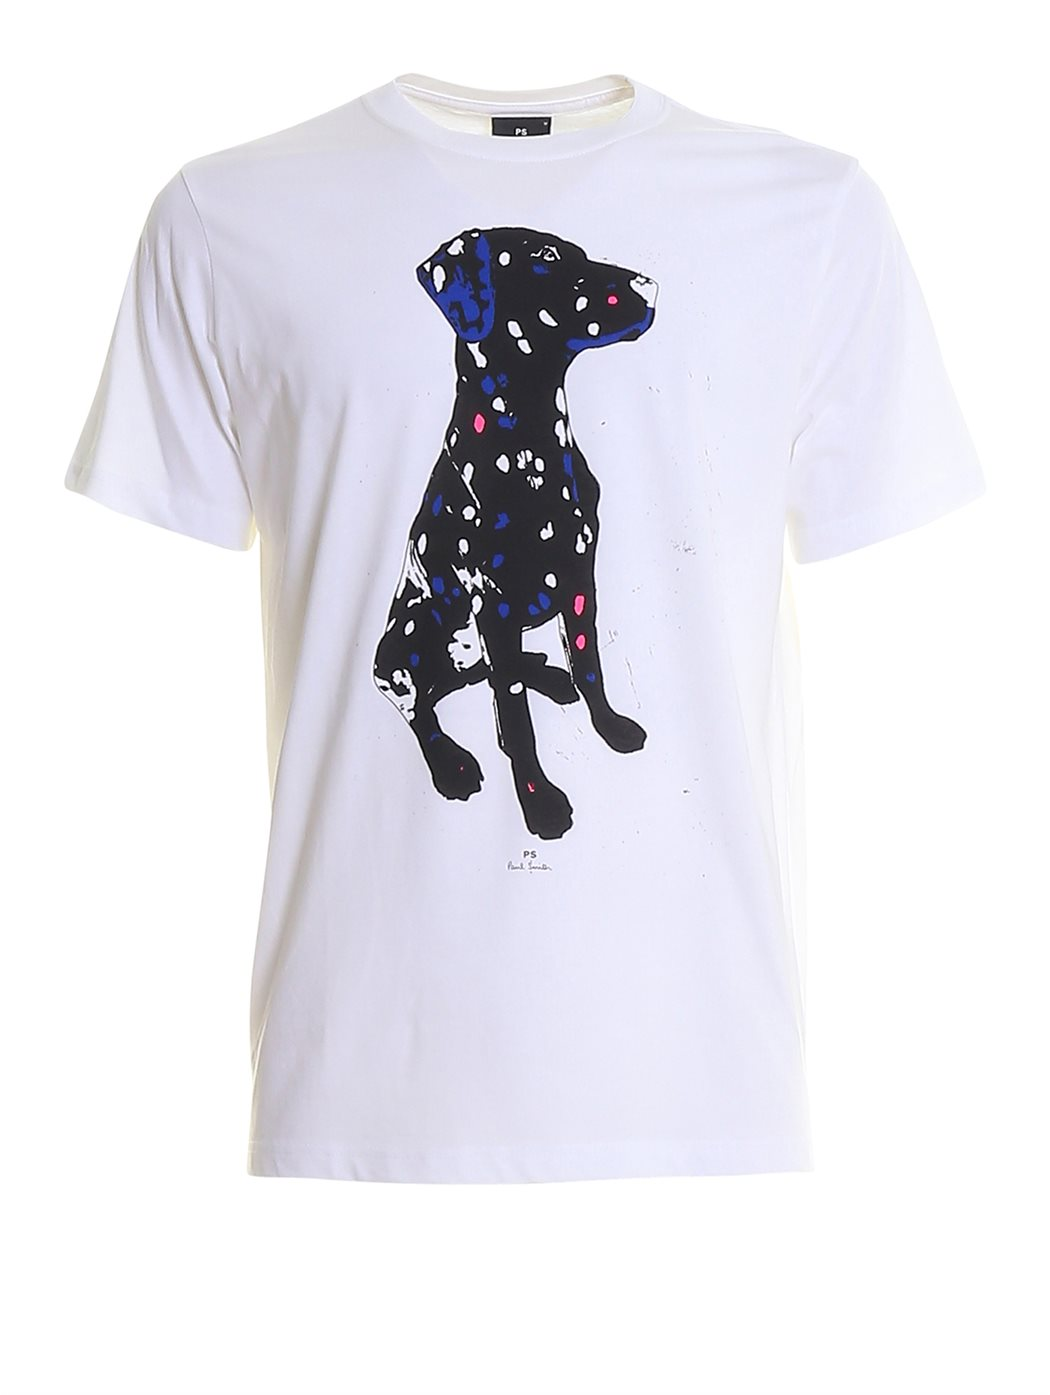 PAUL SMITH M2R-011R 01-WHITE T-SHIRT